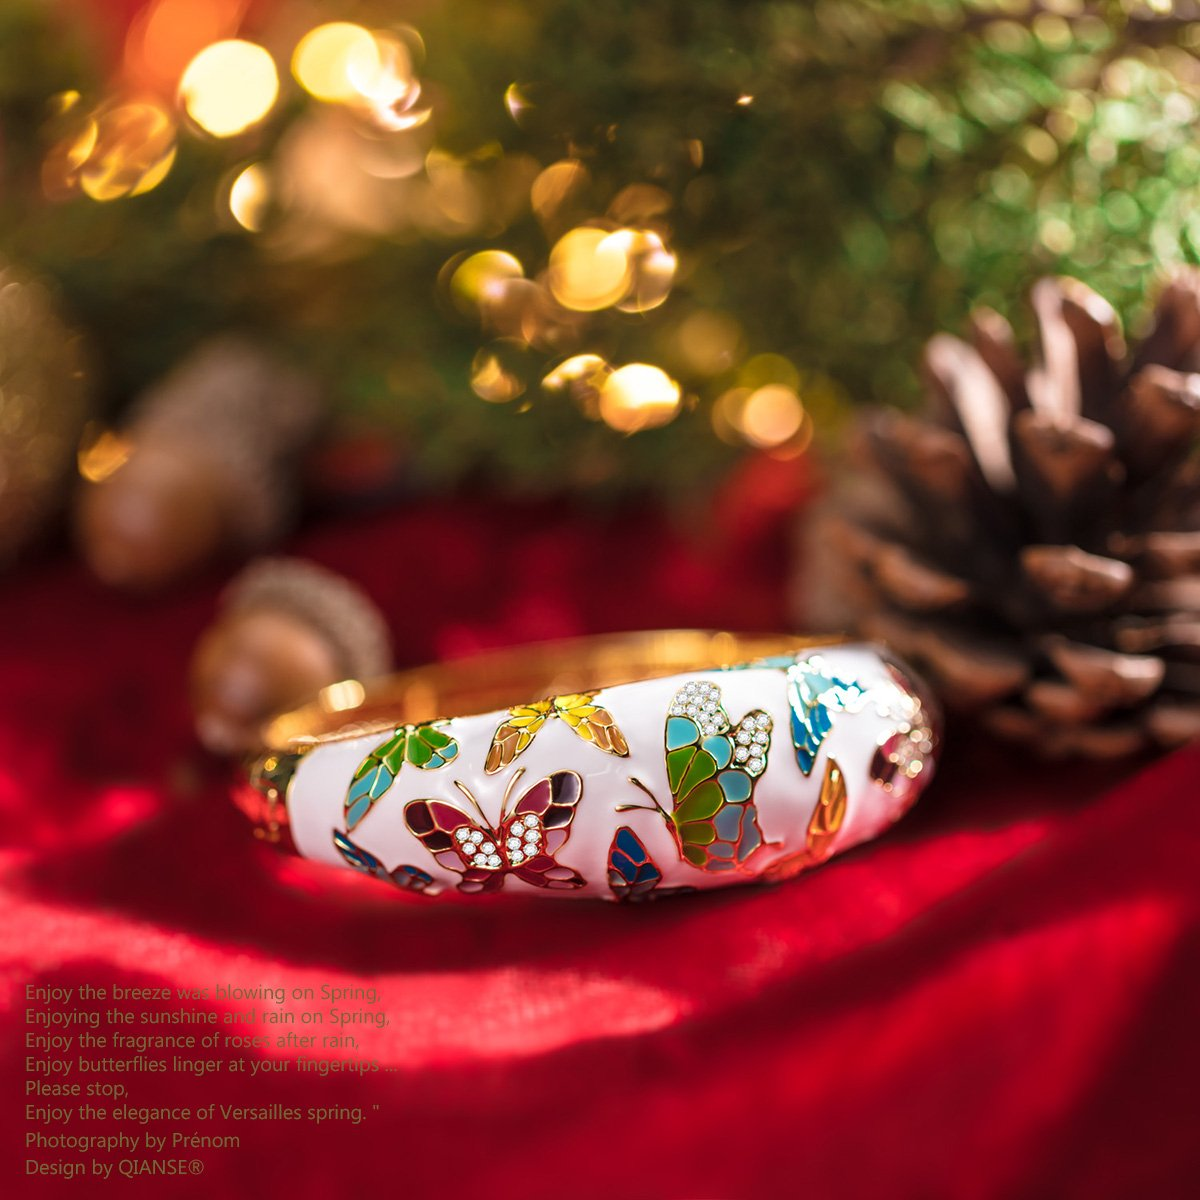 QIANSE Spring of Versailles Yellow Gold Bangle Bracelets Enamel Butterfly Bangles for Women Jewelry for Women Birthday Gifts for Mom Girlfriend Daughter Grandma Mother in Law Present by QIANSE (Image #3)